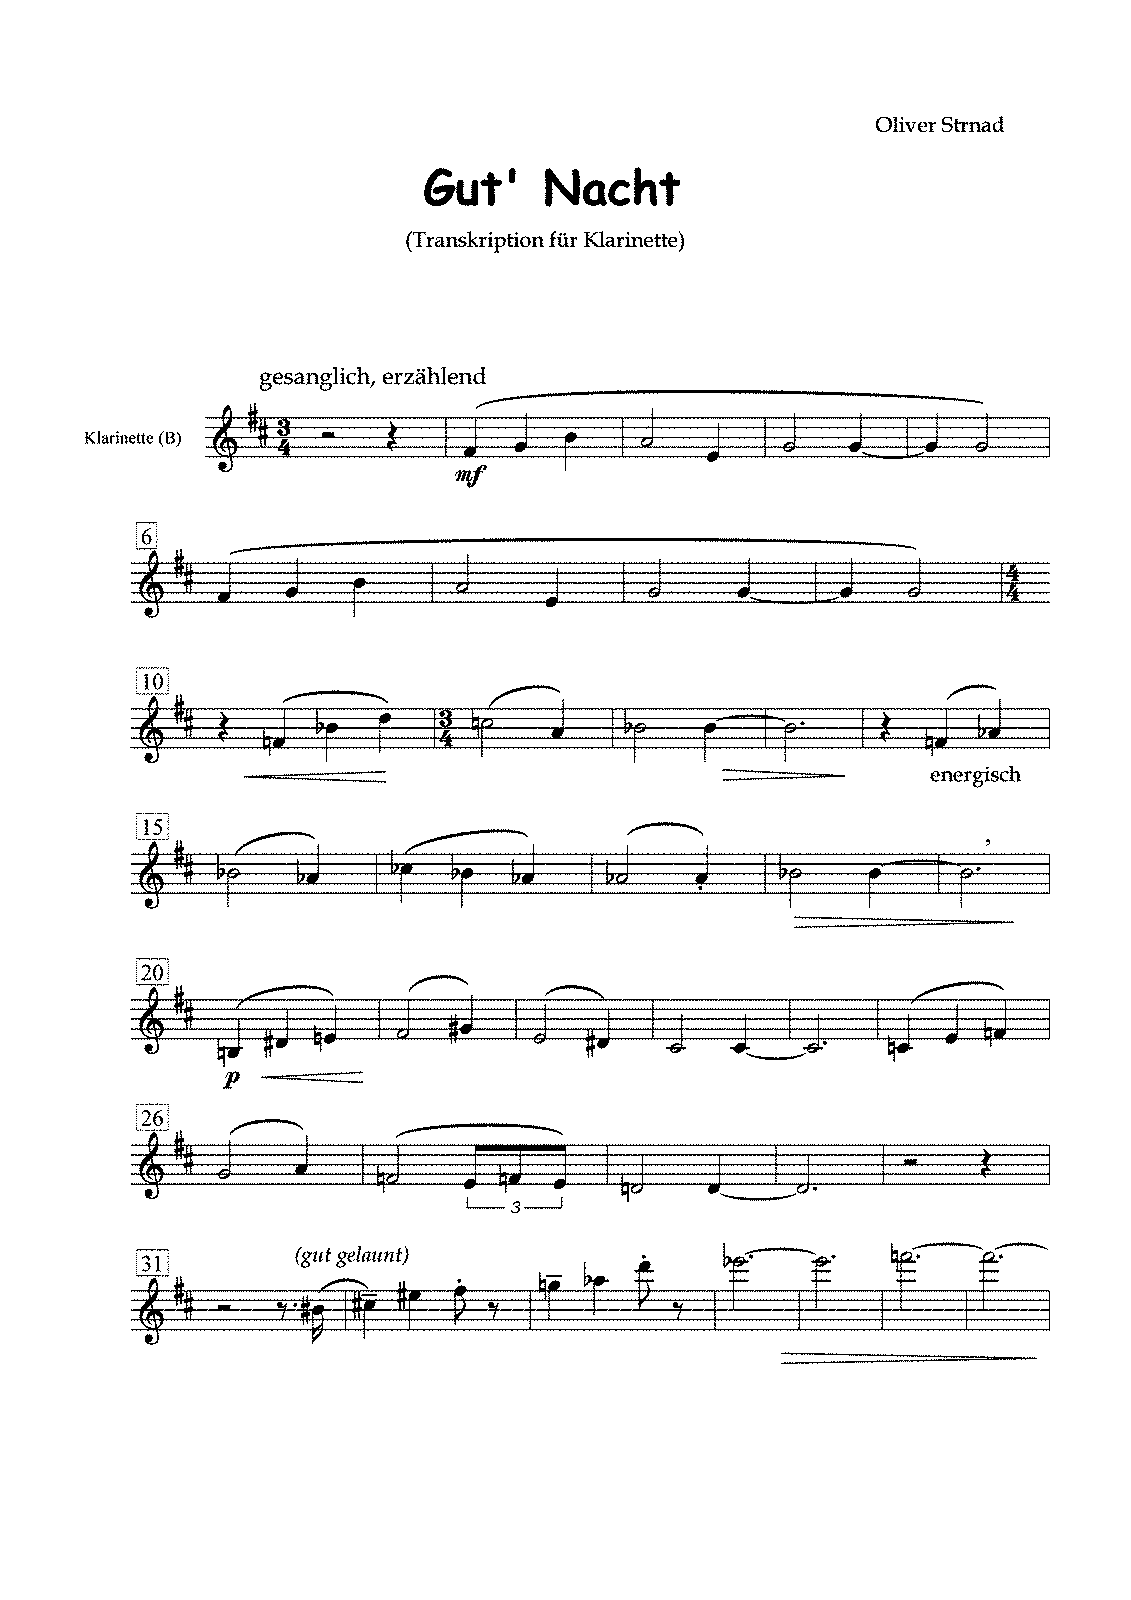 PMLP106861-Strnad Gut Nacht (Klarinette) final.pdf